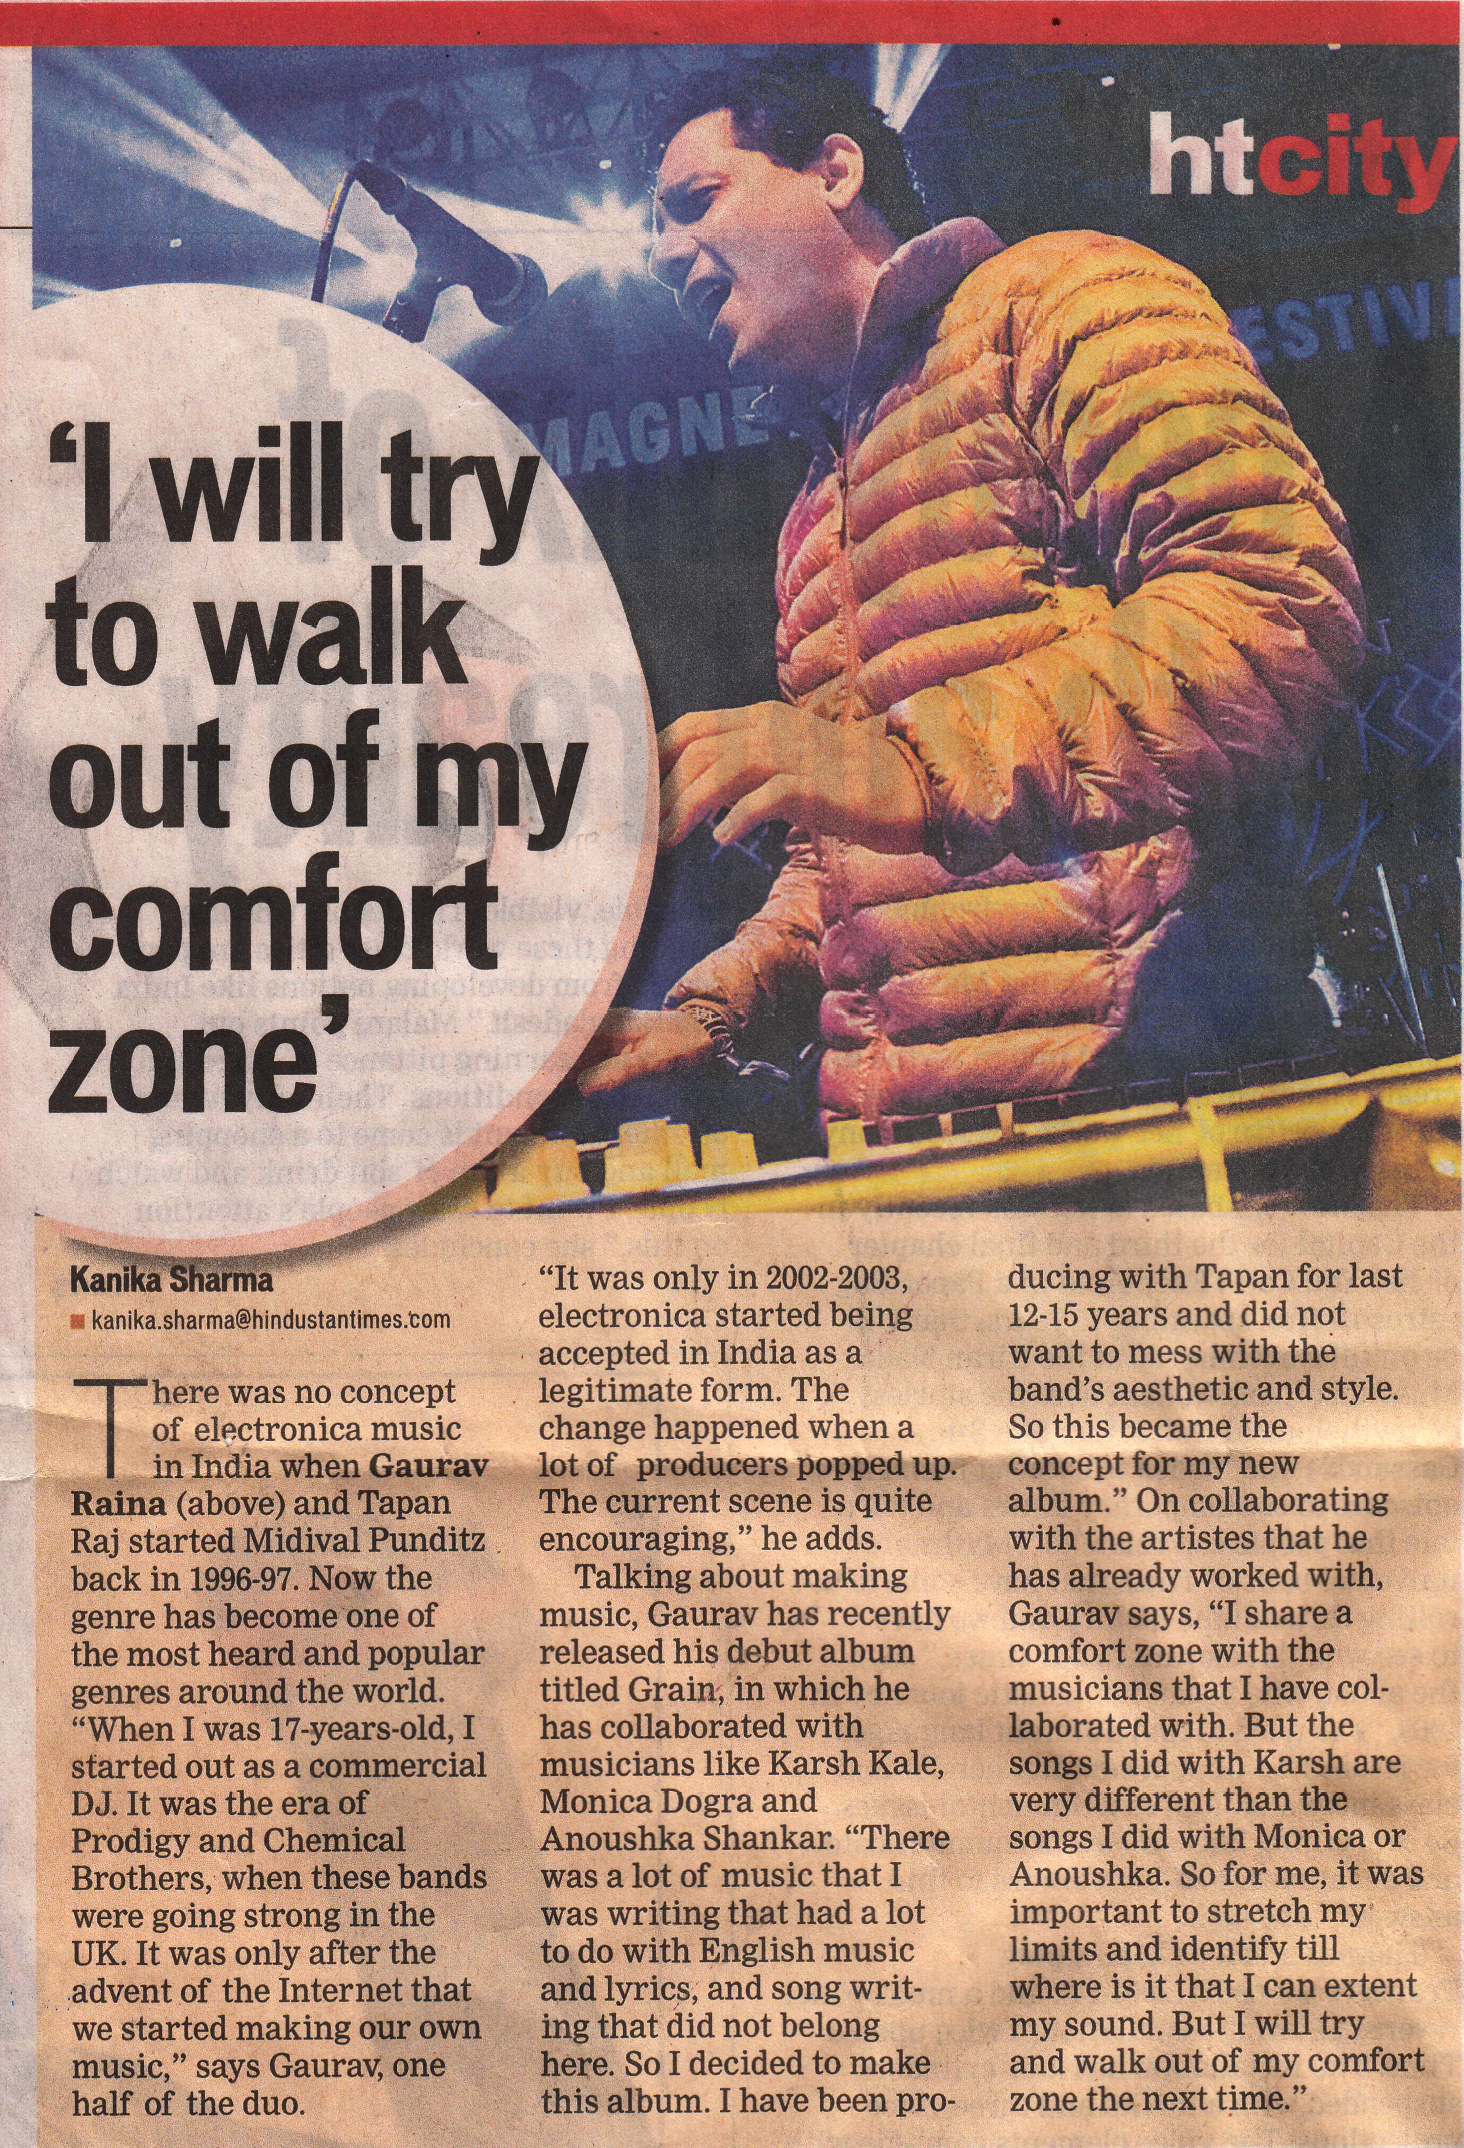 HT City (3rd Oct 2014)